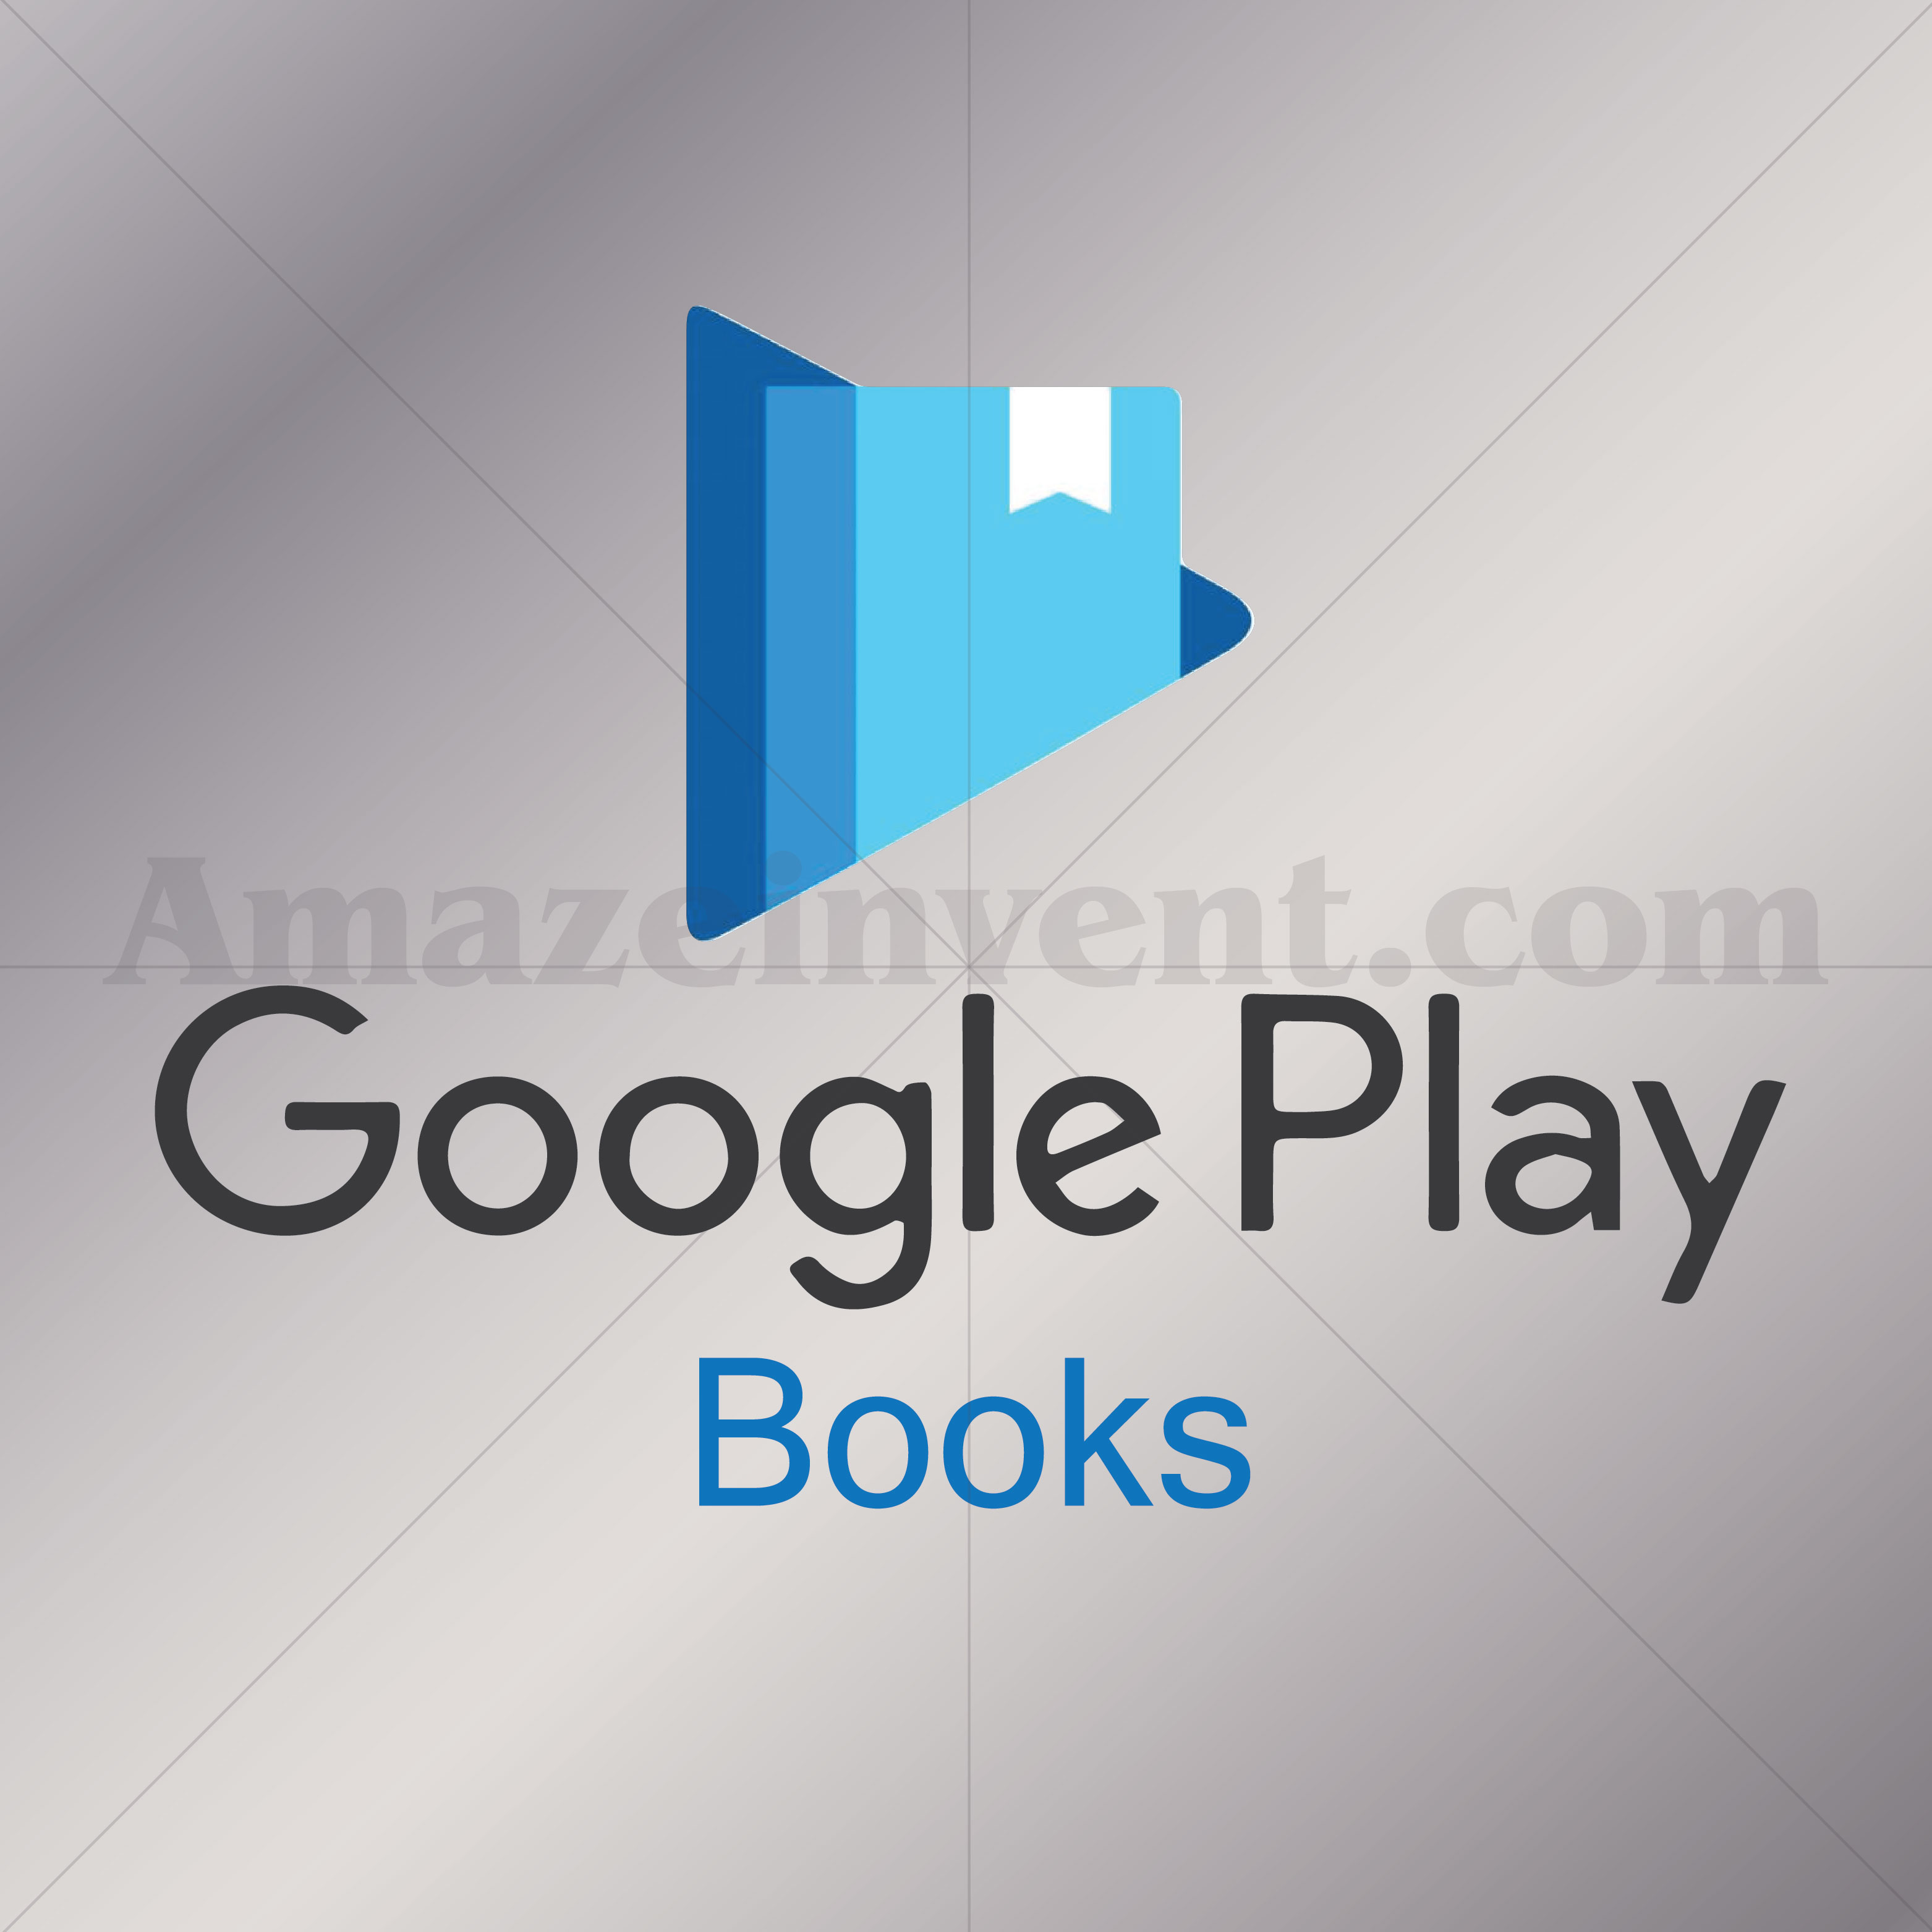 Android apps Google play books